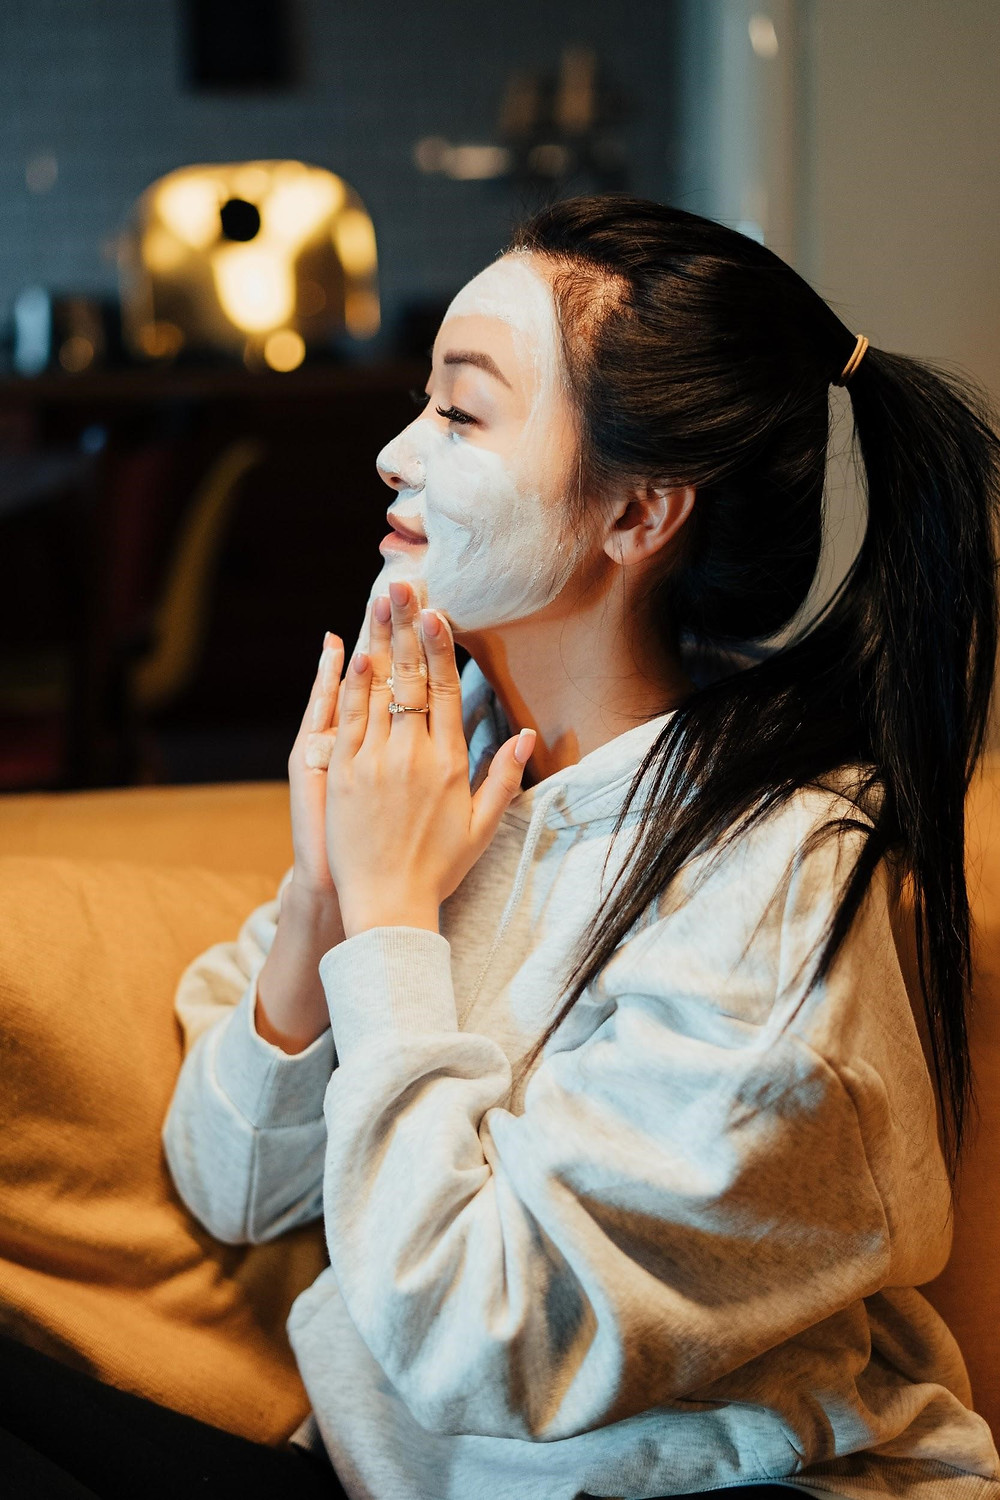 How to Care For Acne-Prone Teenage Skin (Skincare Routine + Recommended Products)